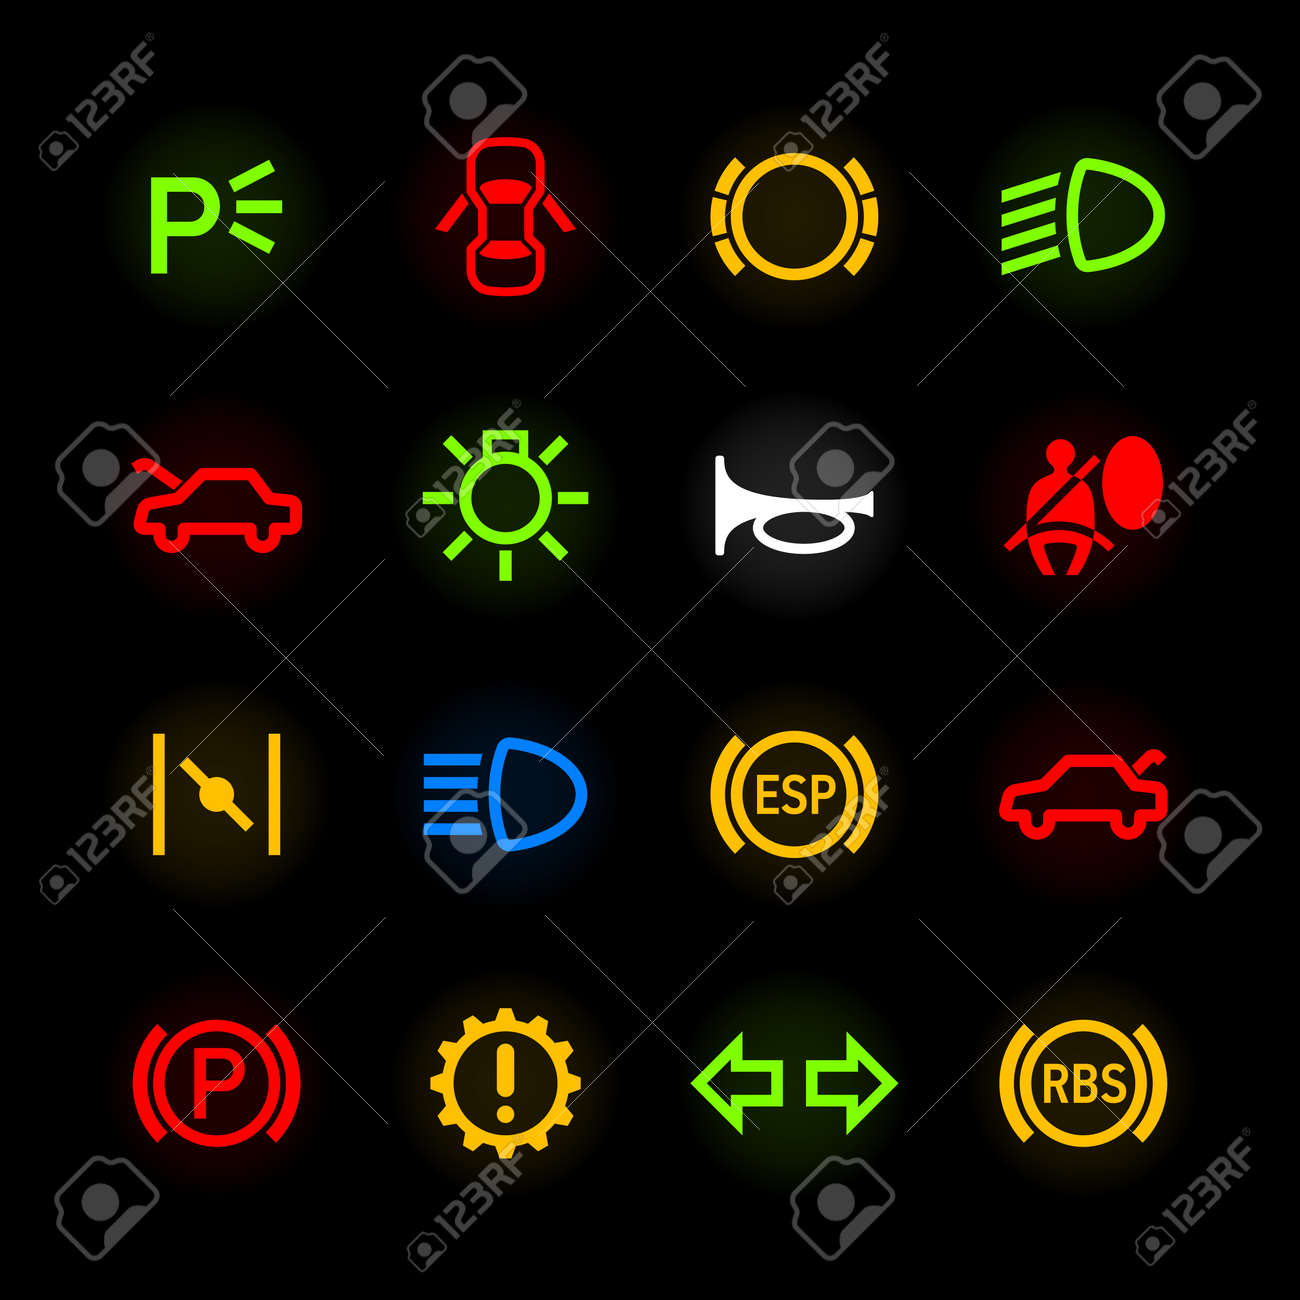 Car Horn Stock Photos Royalty Free Car Horn Images And Pictures - Car image sign of dashboard